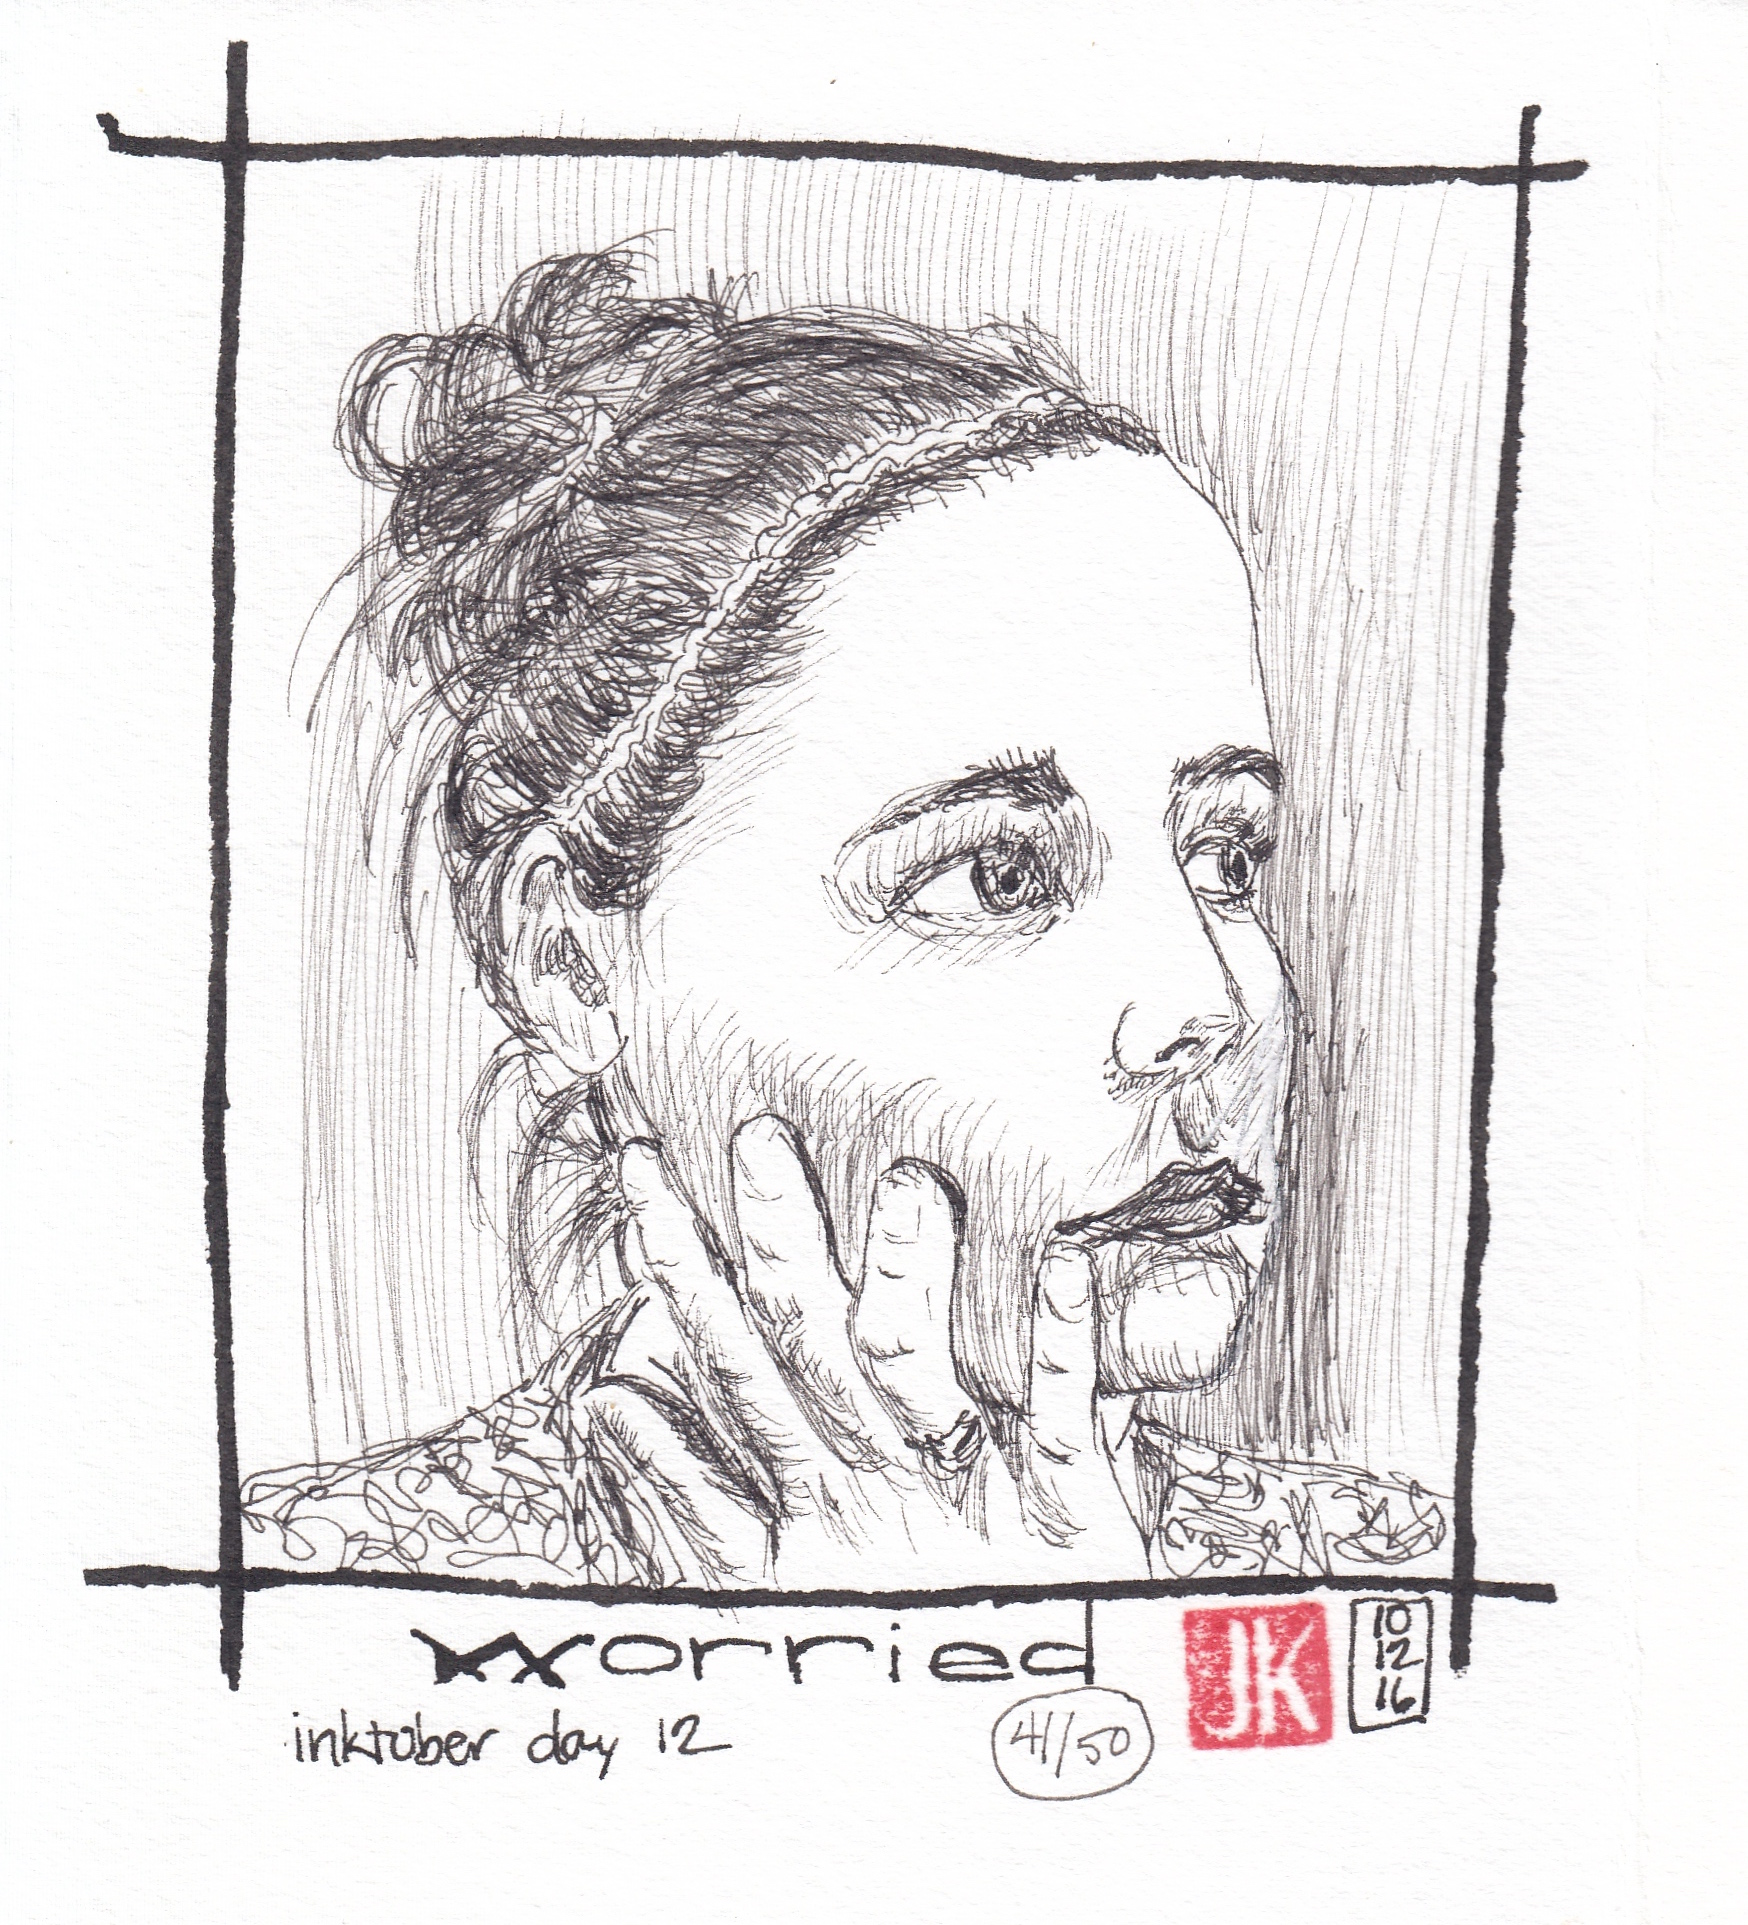 Day 12 - Worried